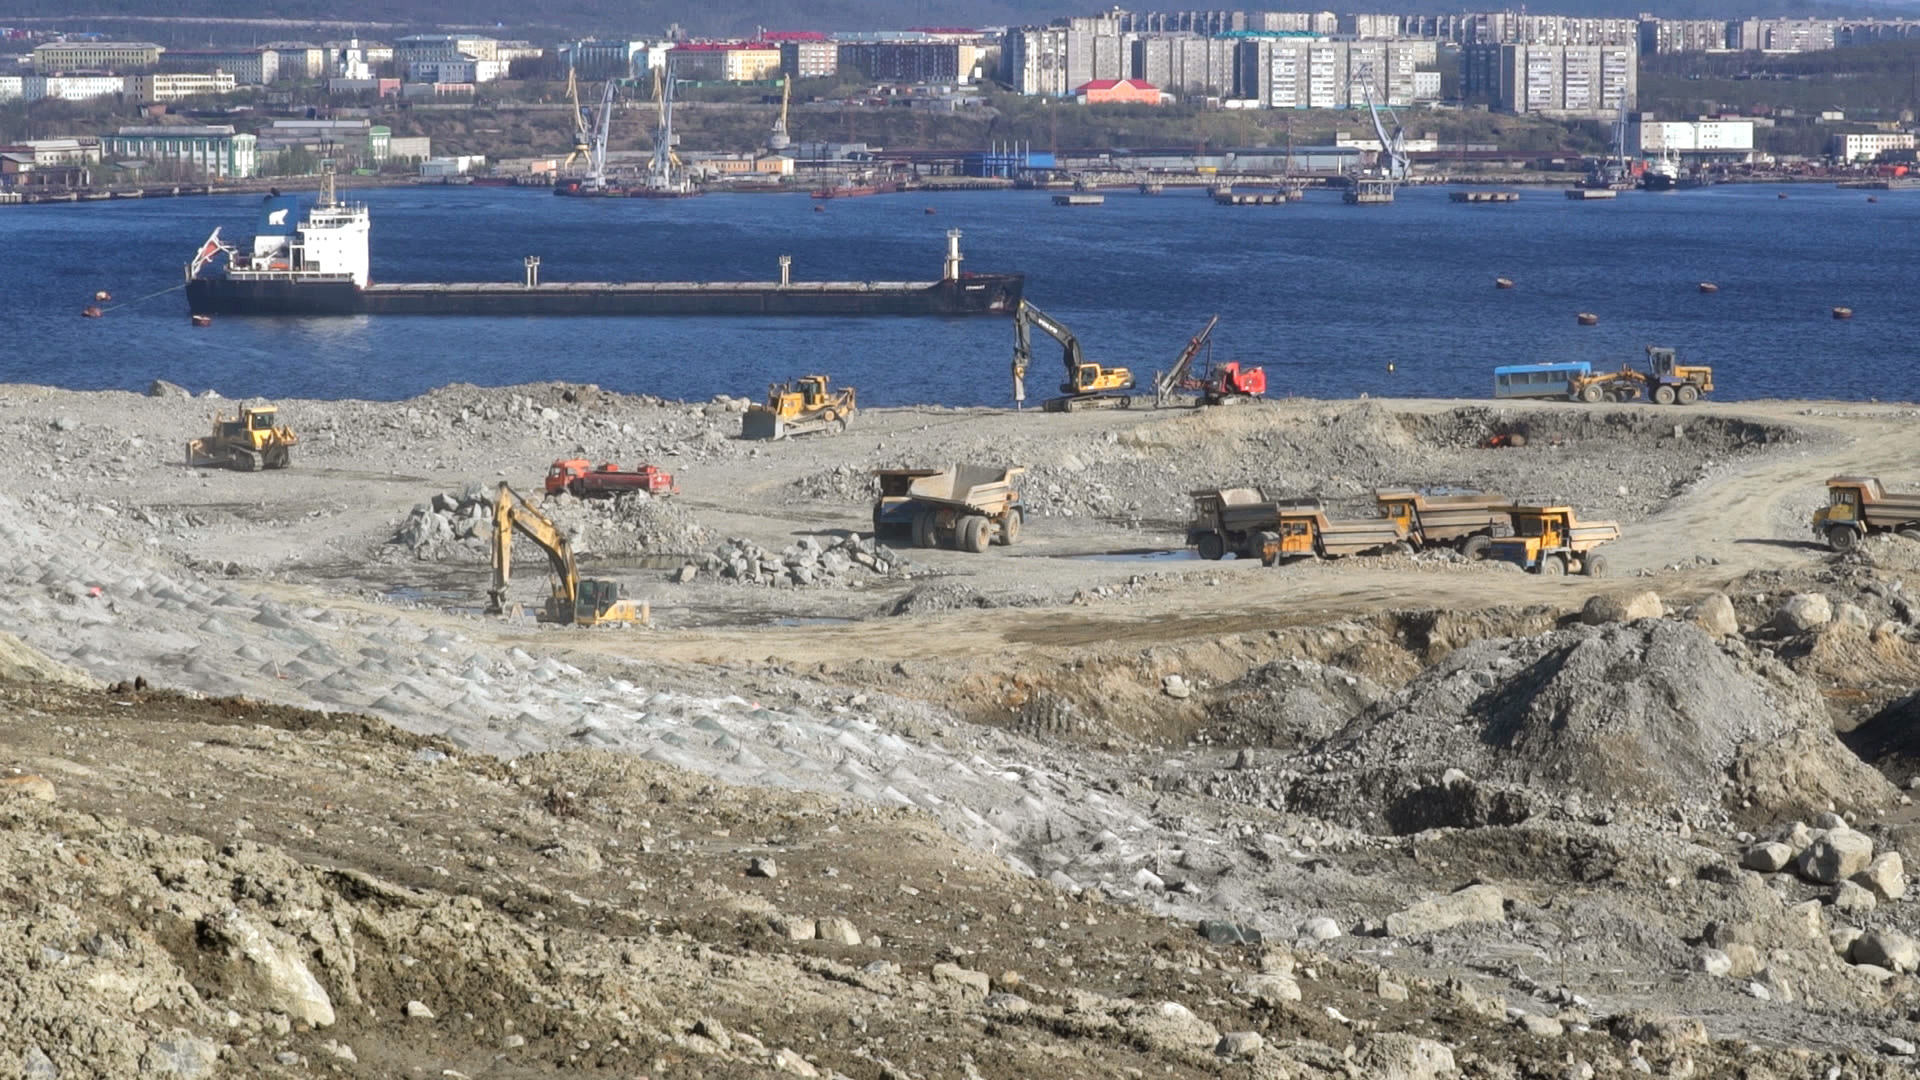 Murmansk's long-awaited port-improvement project takes shape just outside the city.